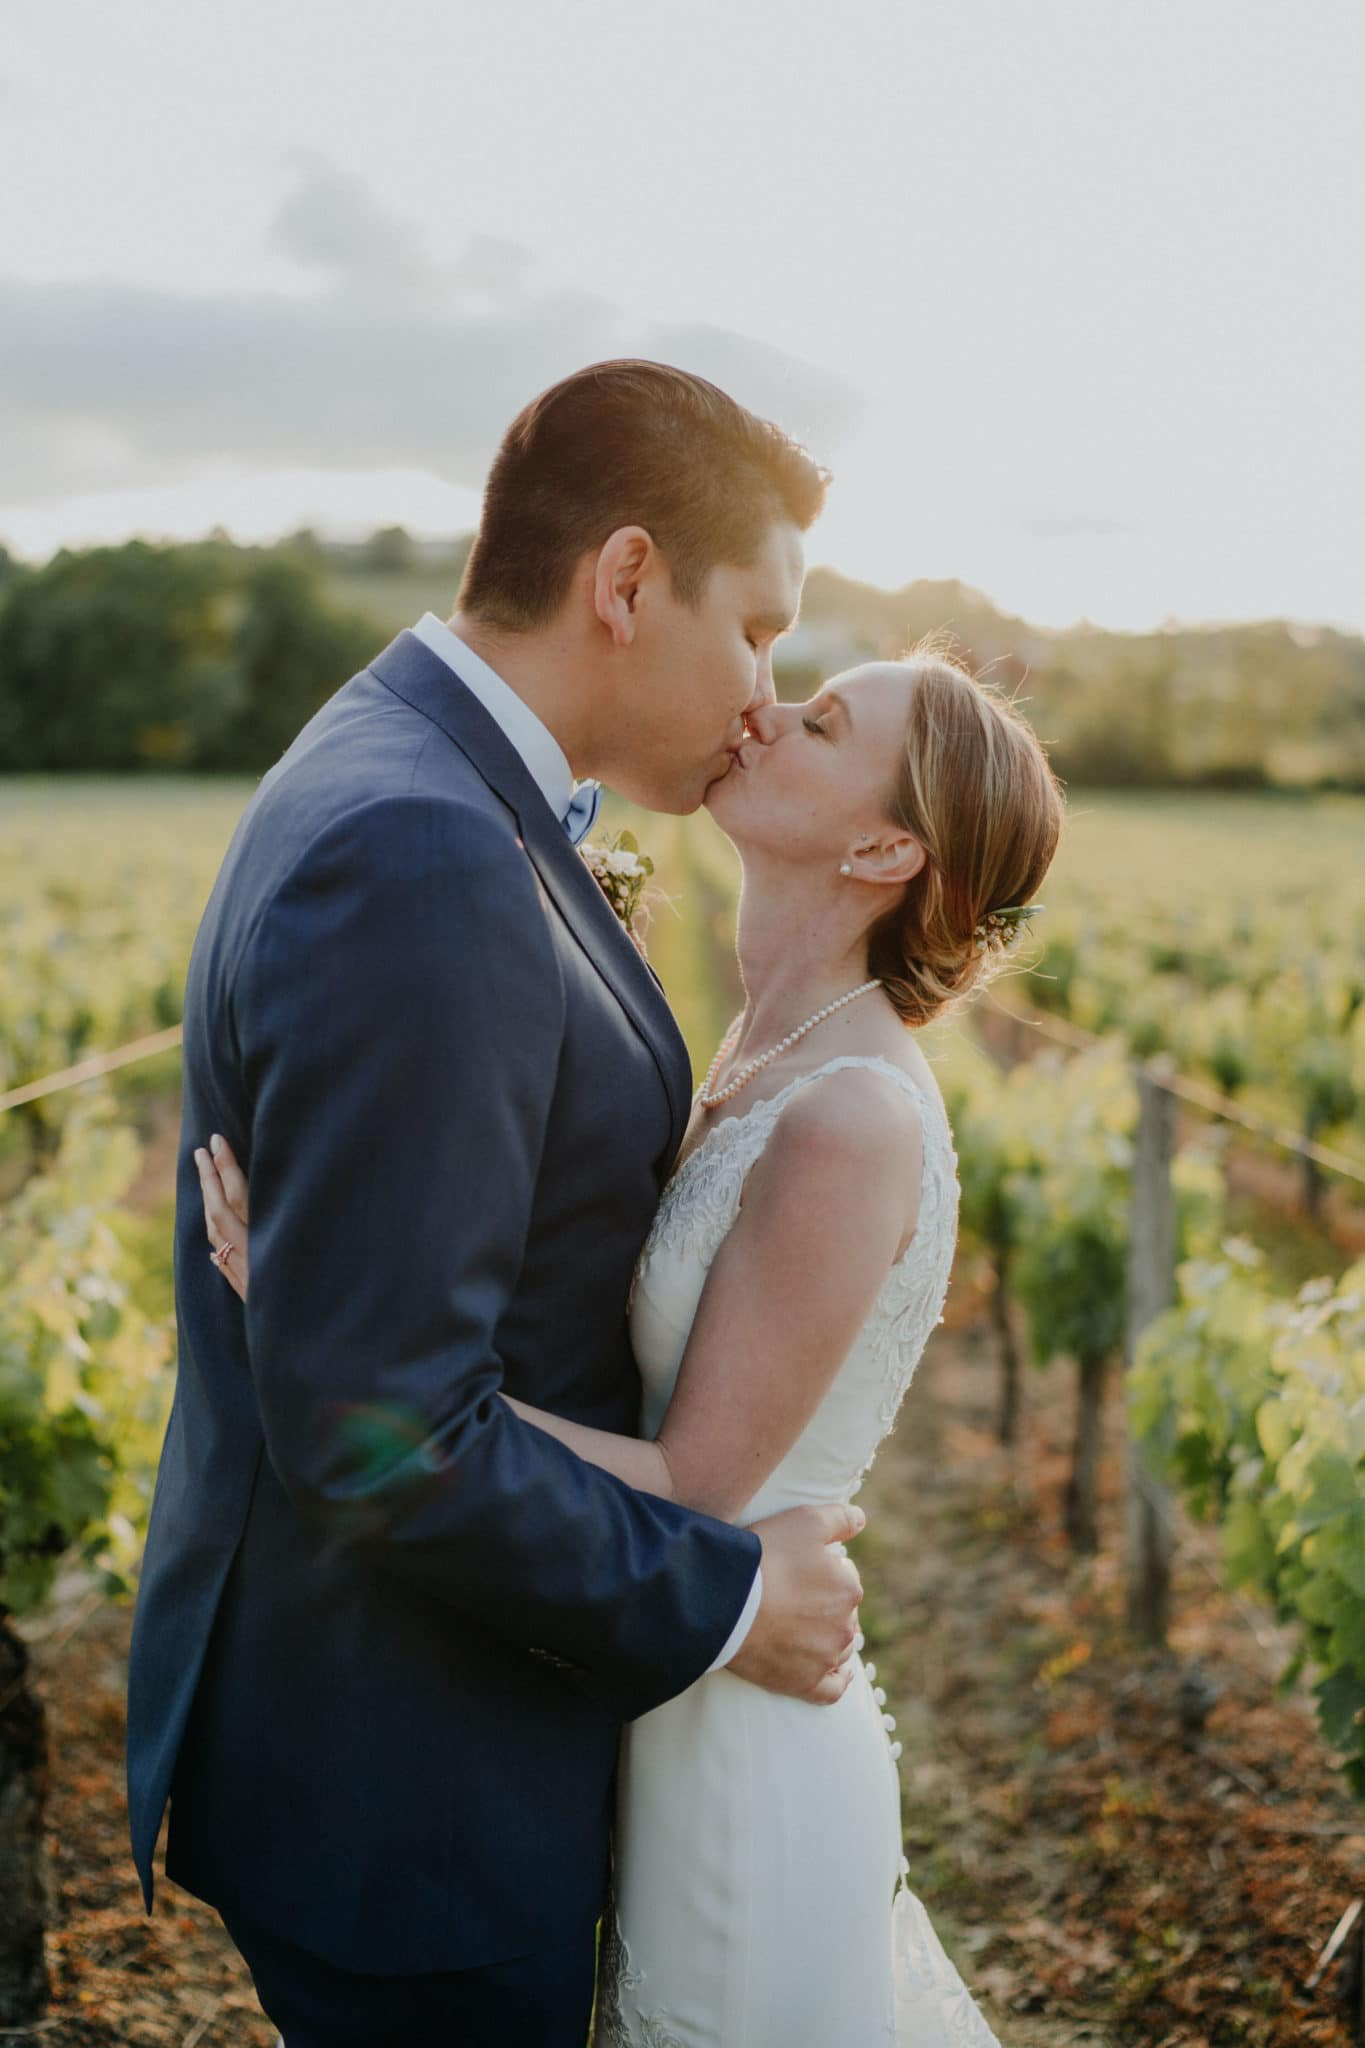 Nicki and Richard wedding in Saint-Emilion par Jenny Morel Weddings